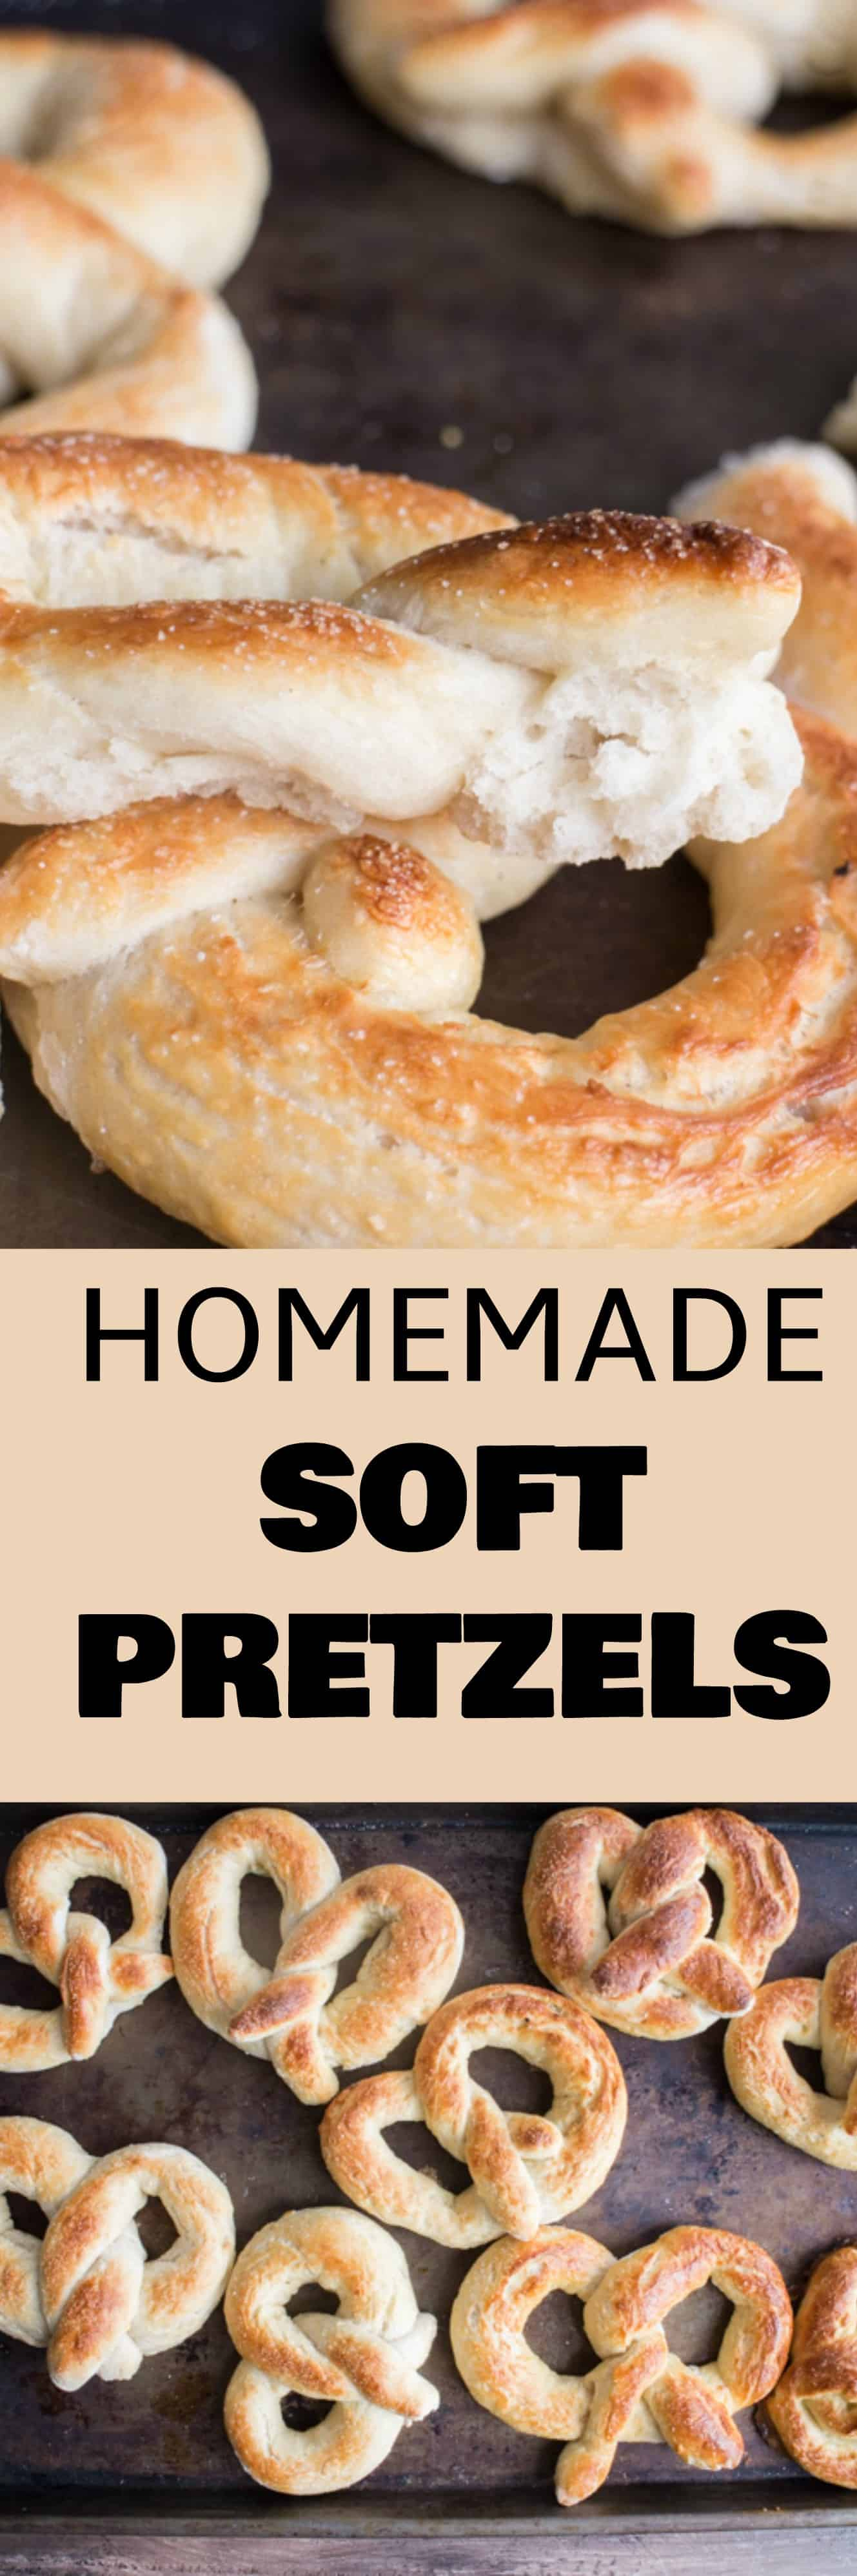 HOMEMADE Soft Pretzels Recipe! You won't believe how easy it is to make buttery soft pretzels at home!  This recipe shows you how to make them with step by step instructions.